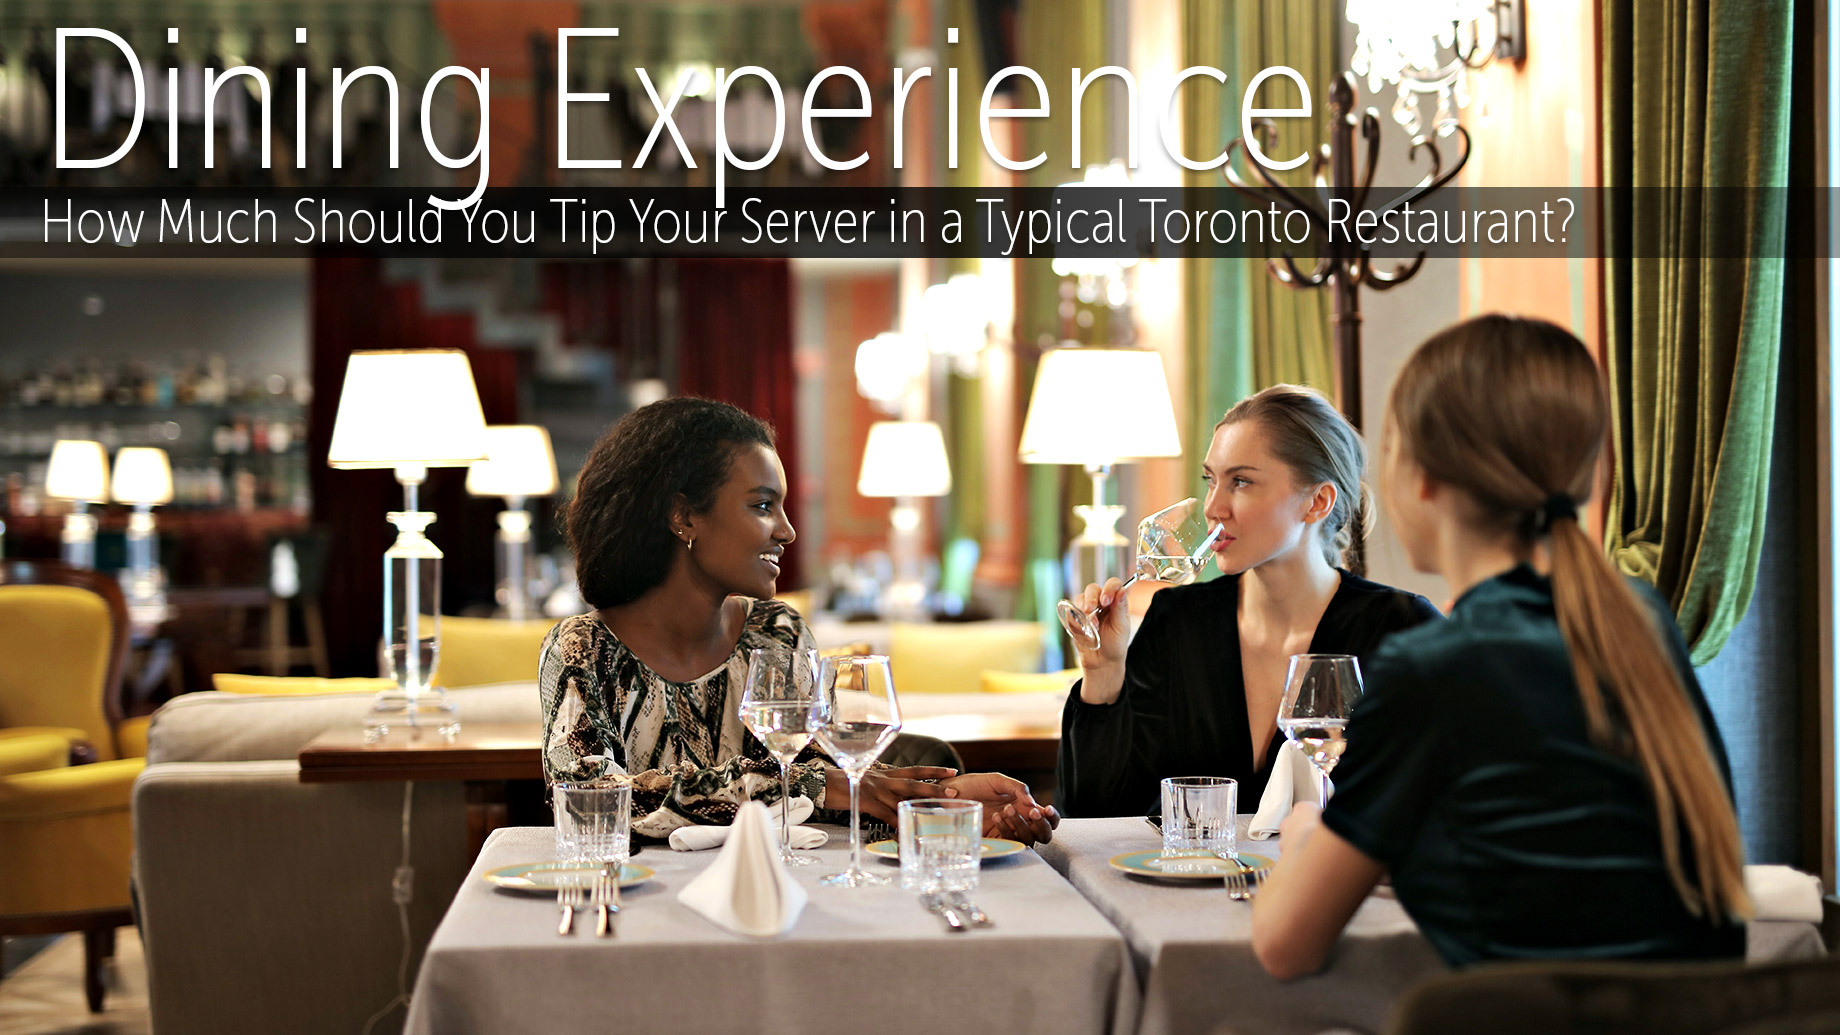 Dining Experience - How Much Should You Tip Your Server in a Typical Toronto Restaurant?